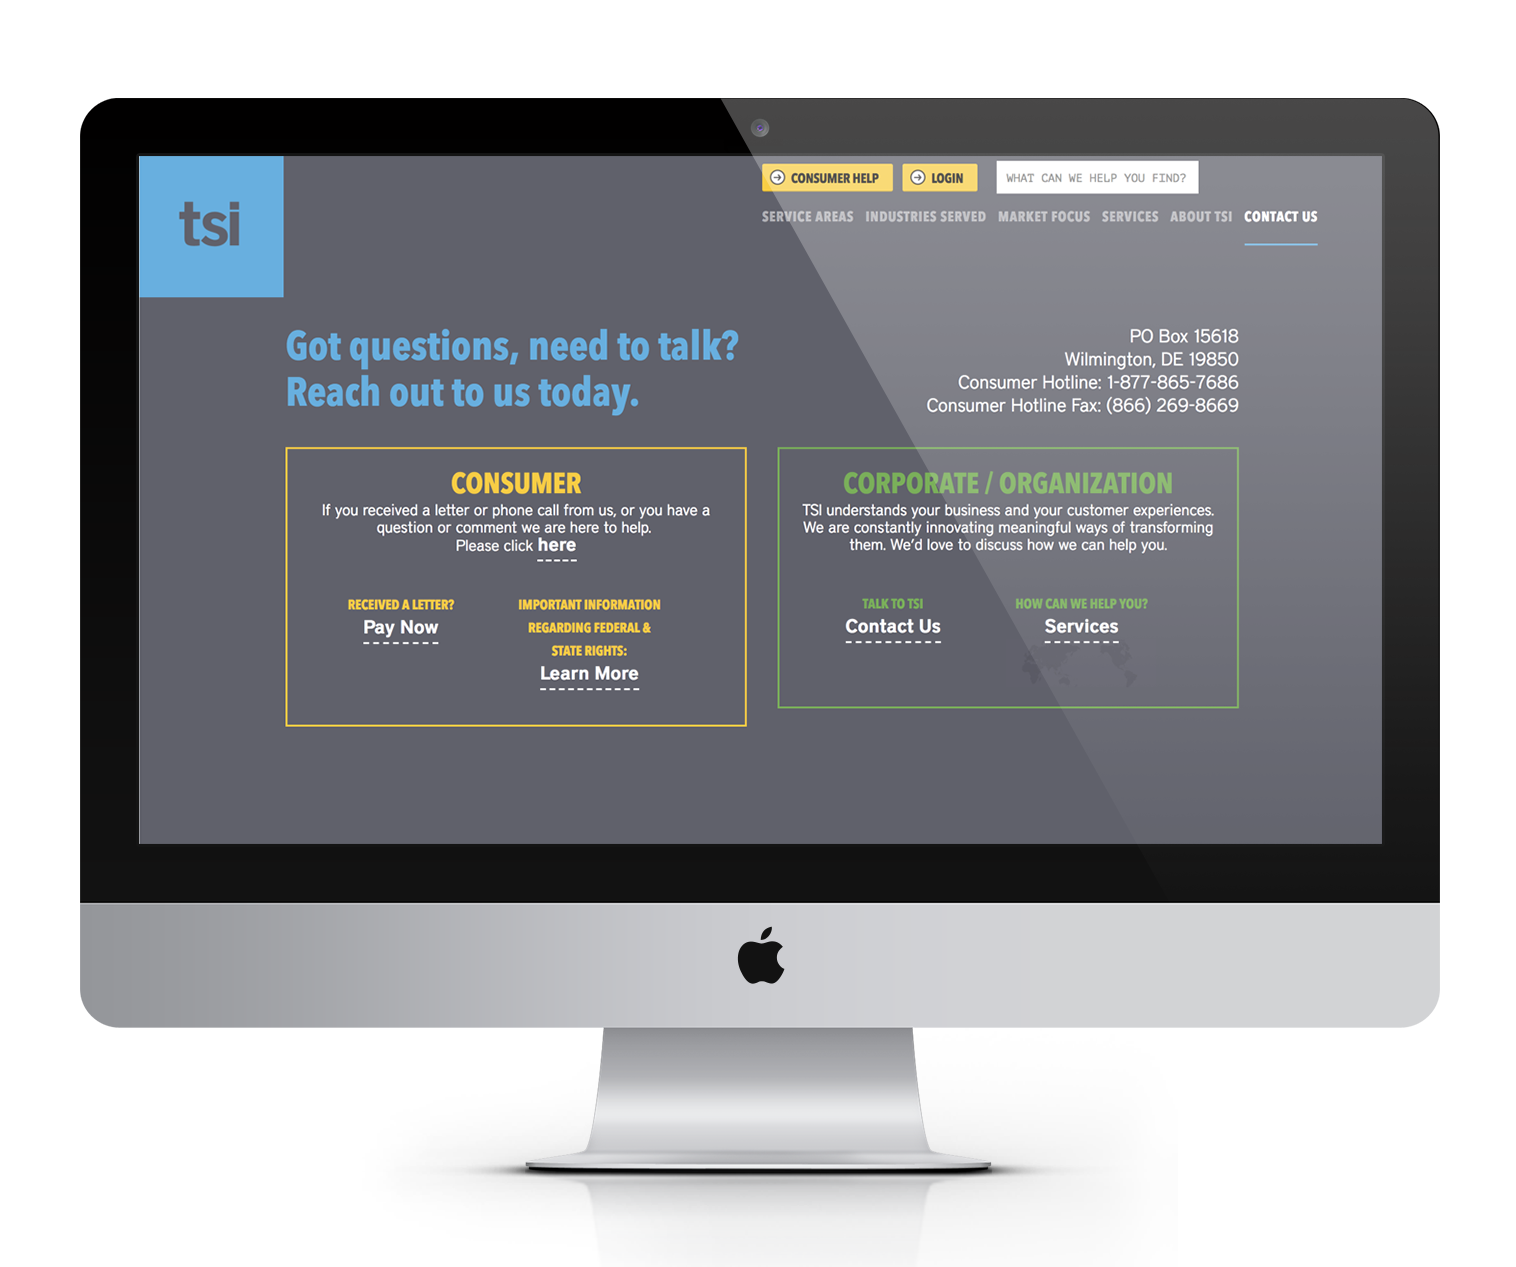 TSI Contact Us before website redesign